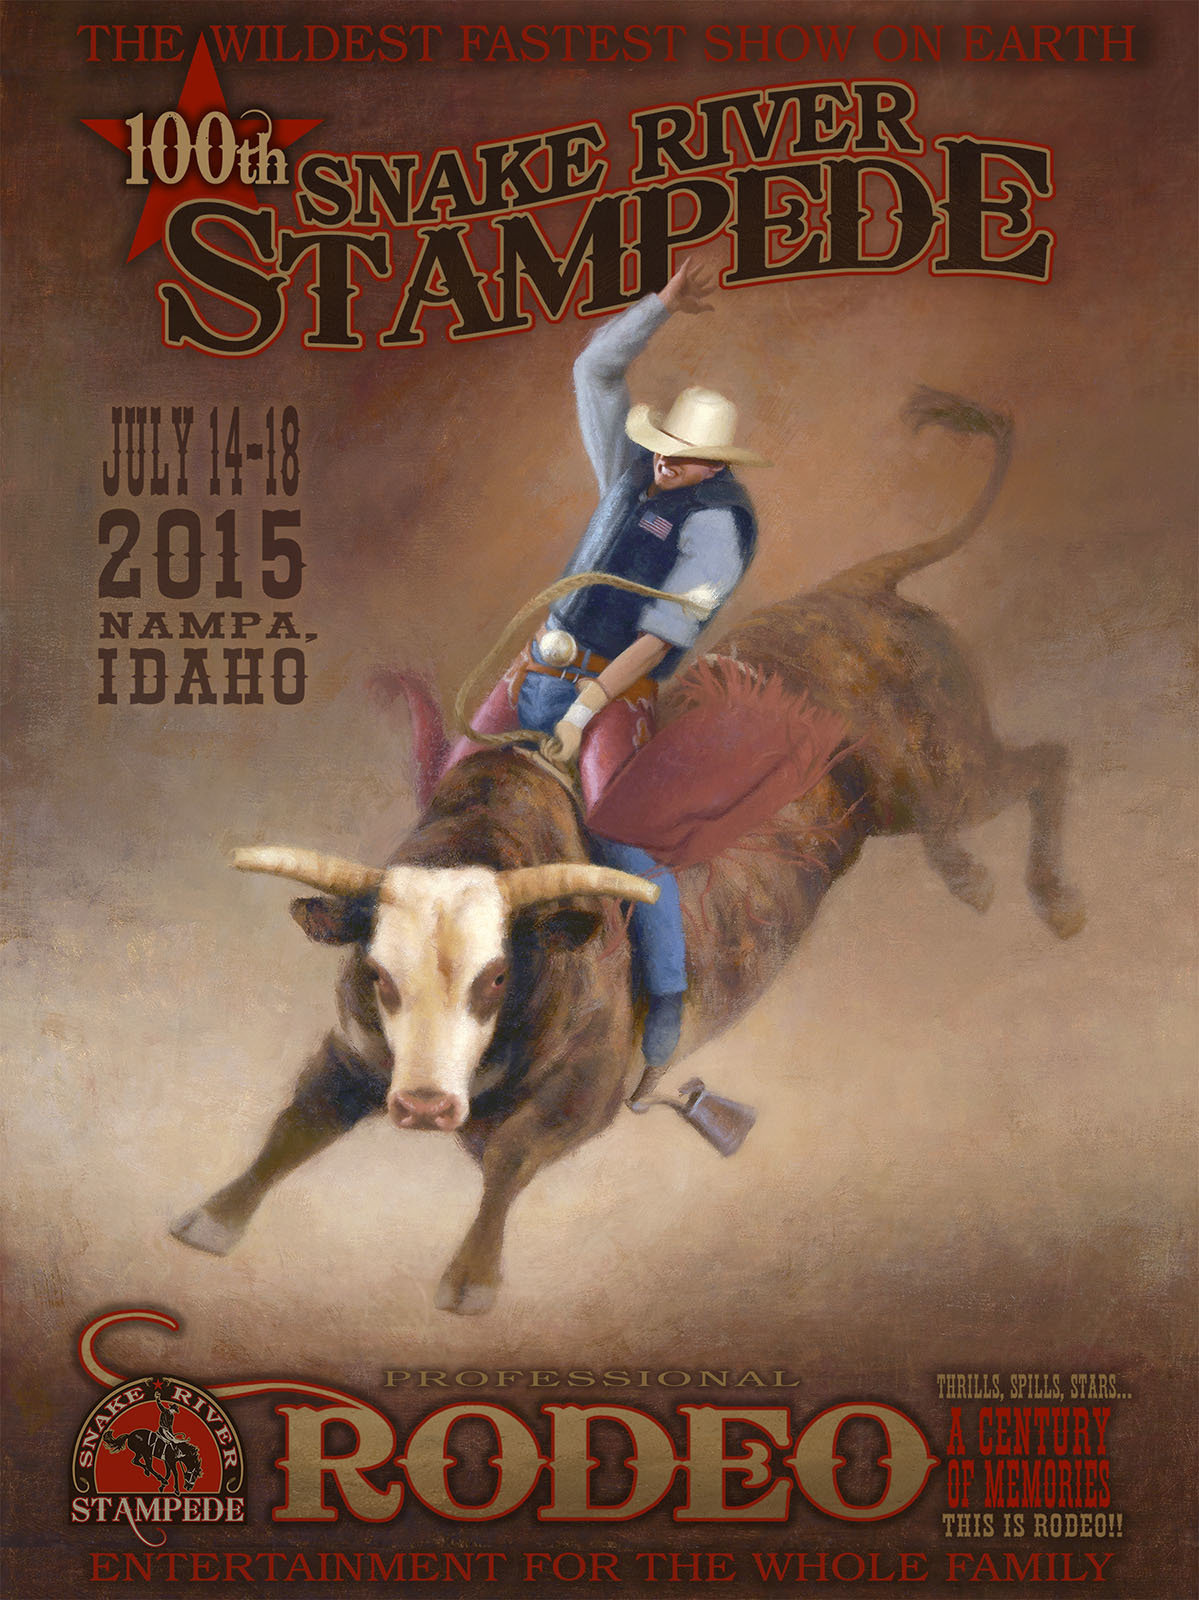 2015 OFFICIAL RODEO POSTER 00004